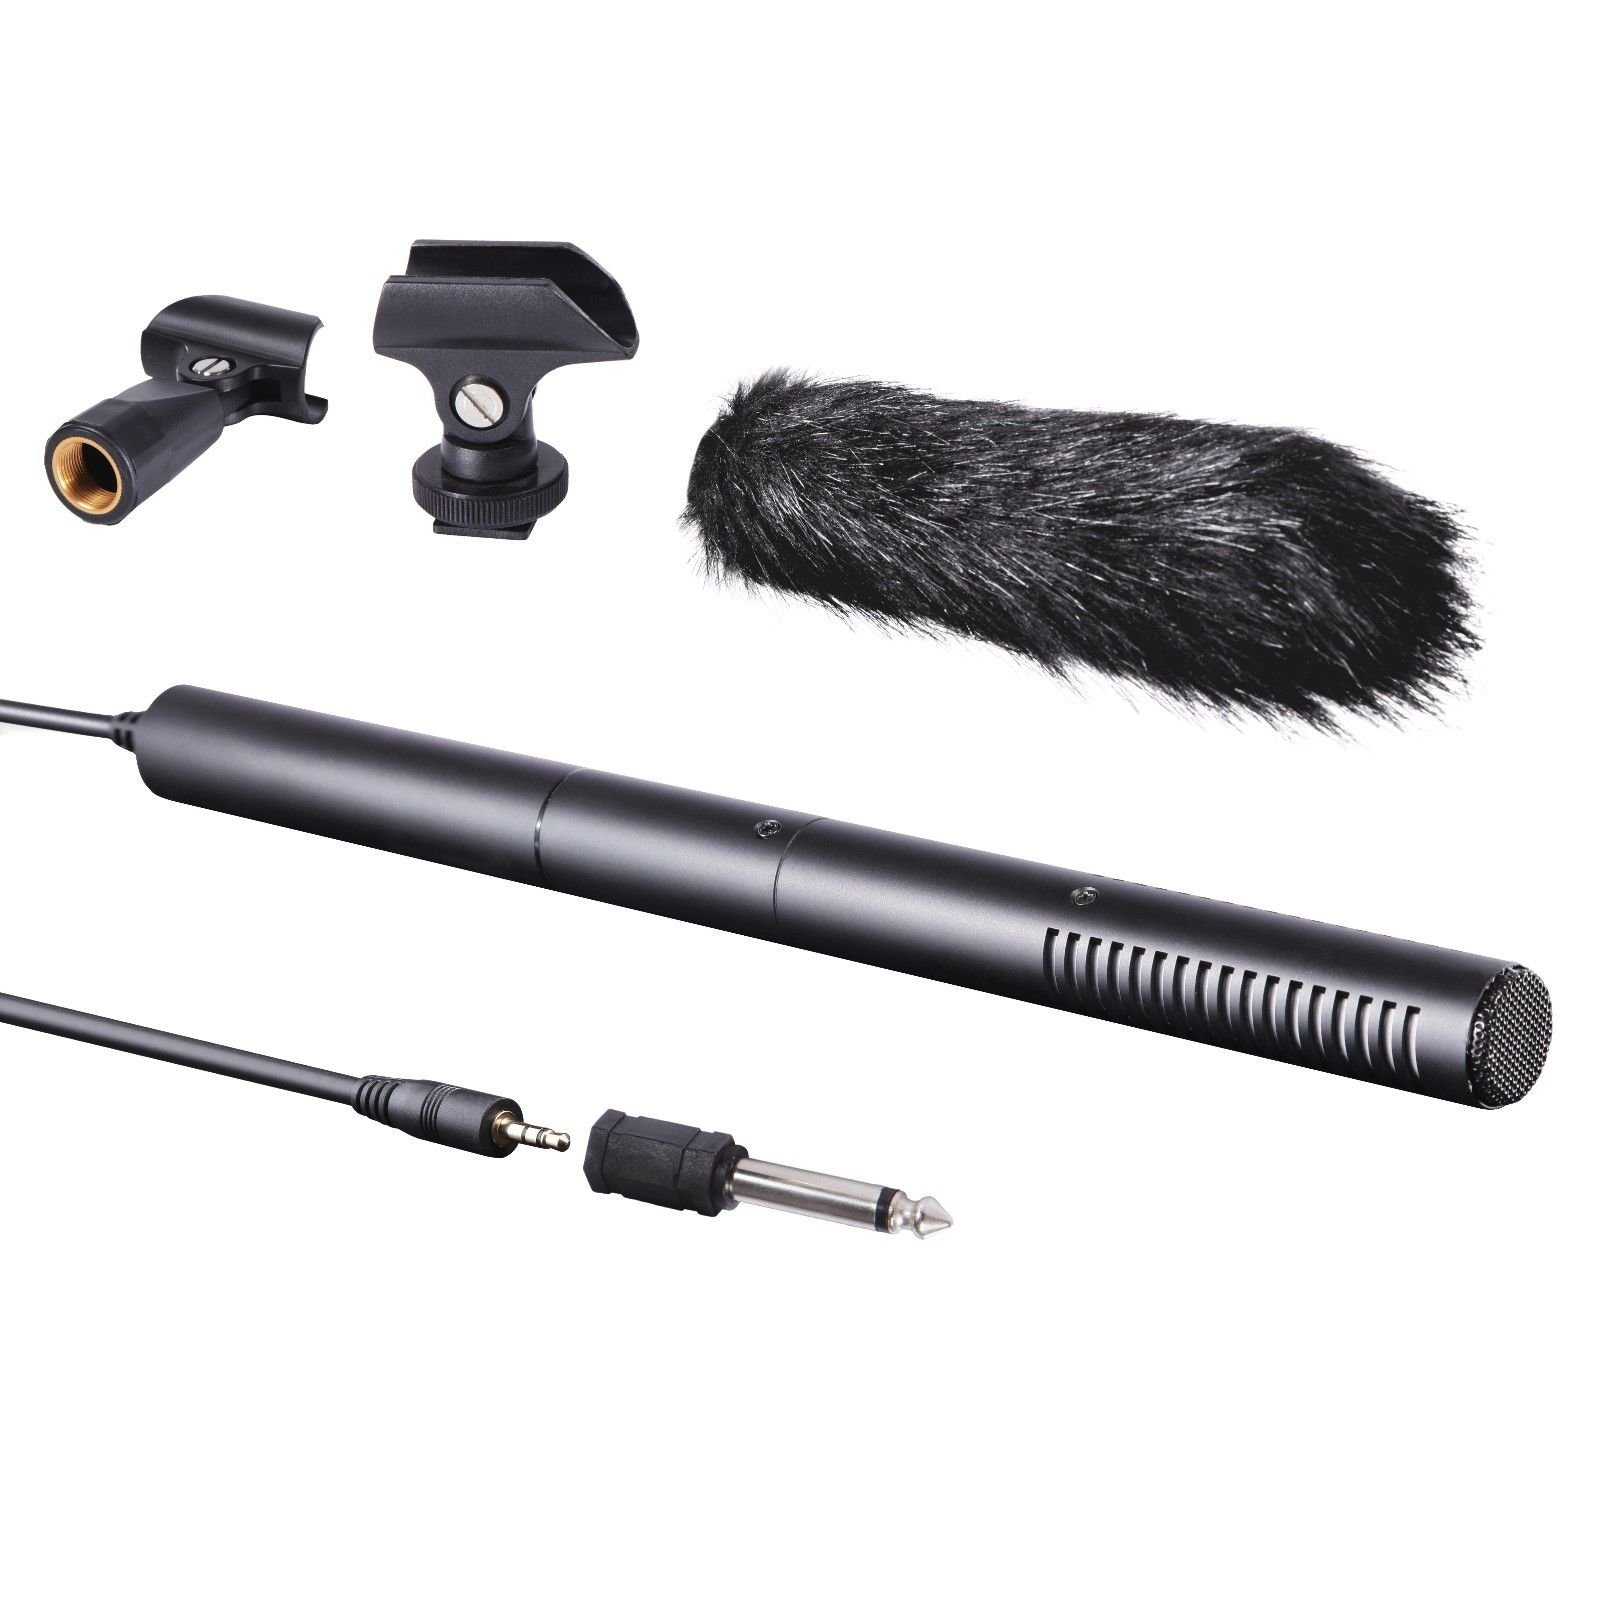 Movo VXR40 Supercardioid Broadcast Shotgun Condenser Microphone with Furry Windscreen, Boom Mount and Camera Mount